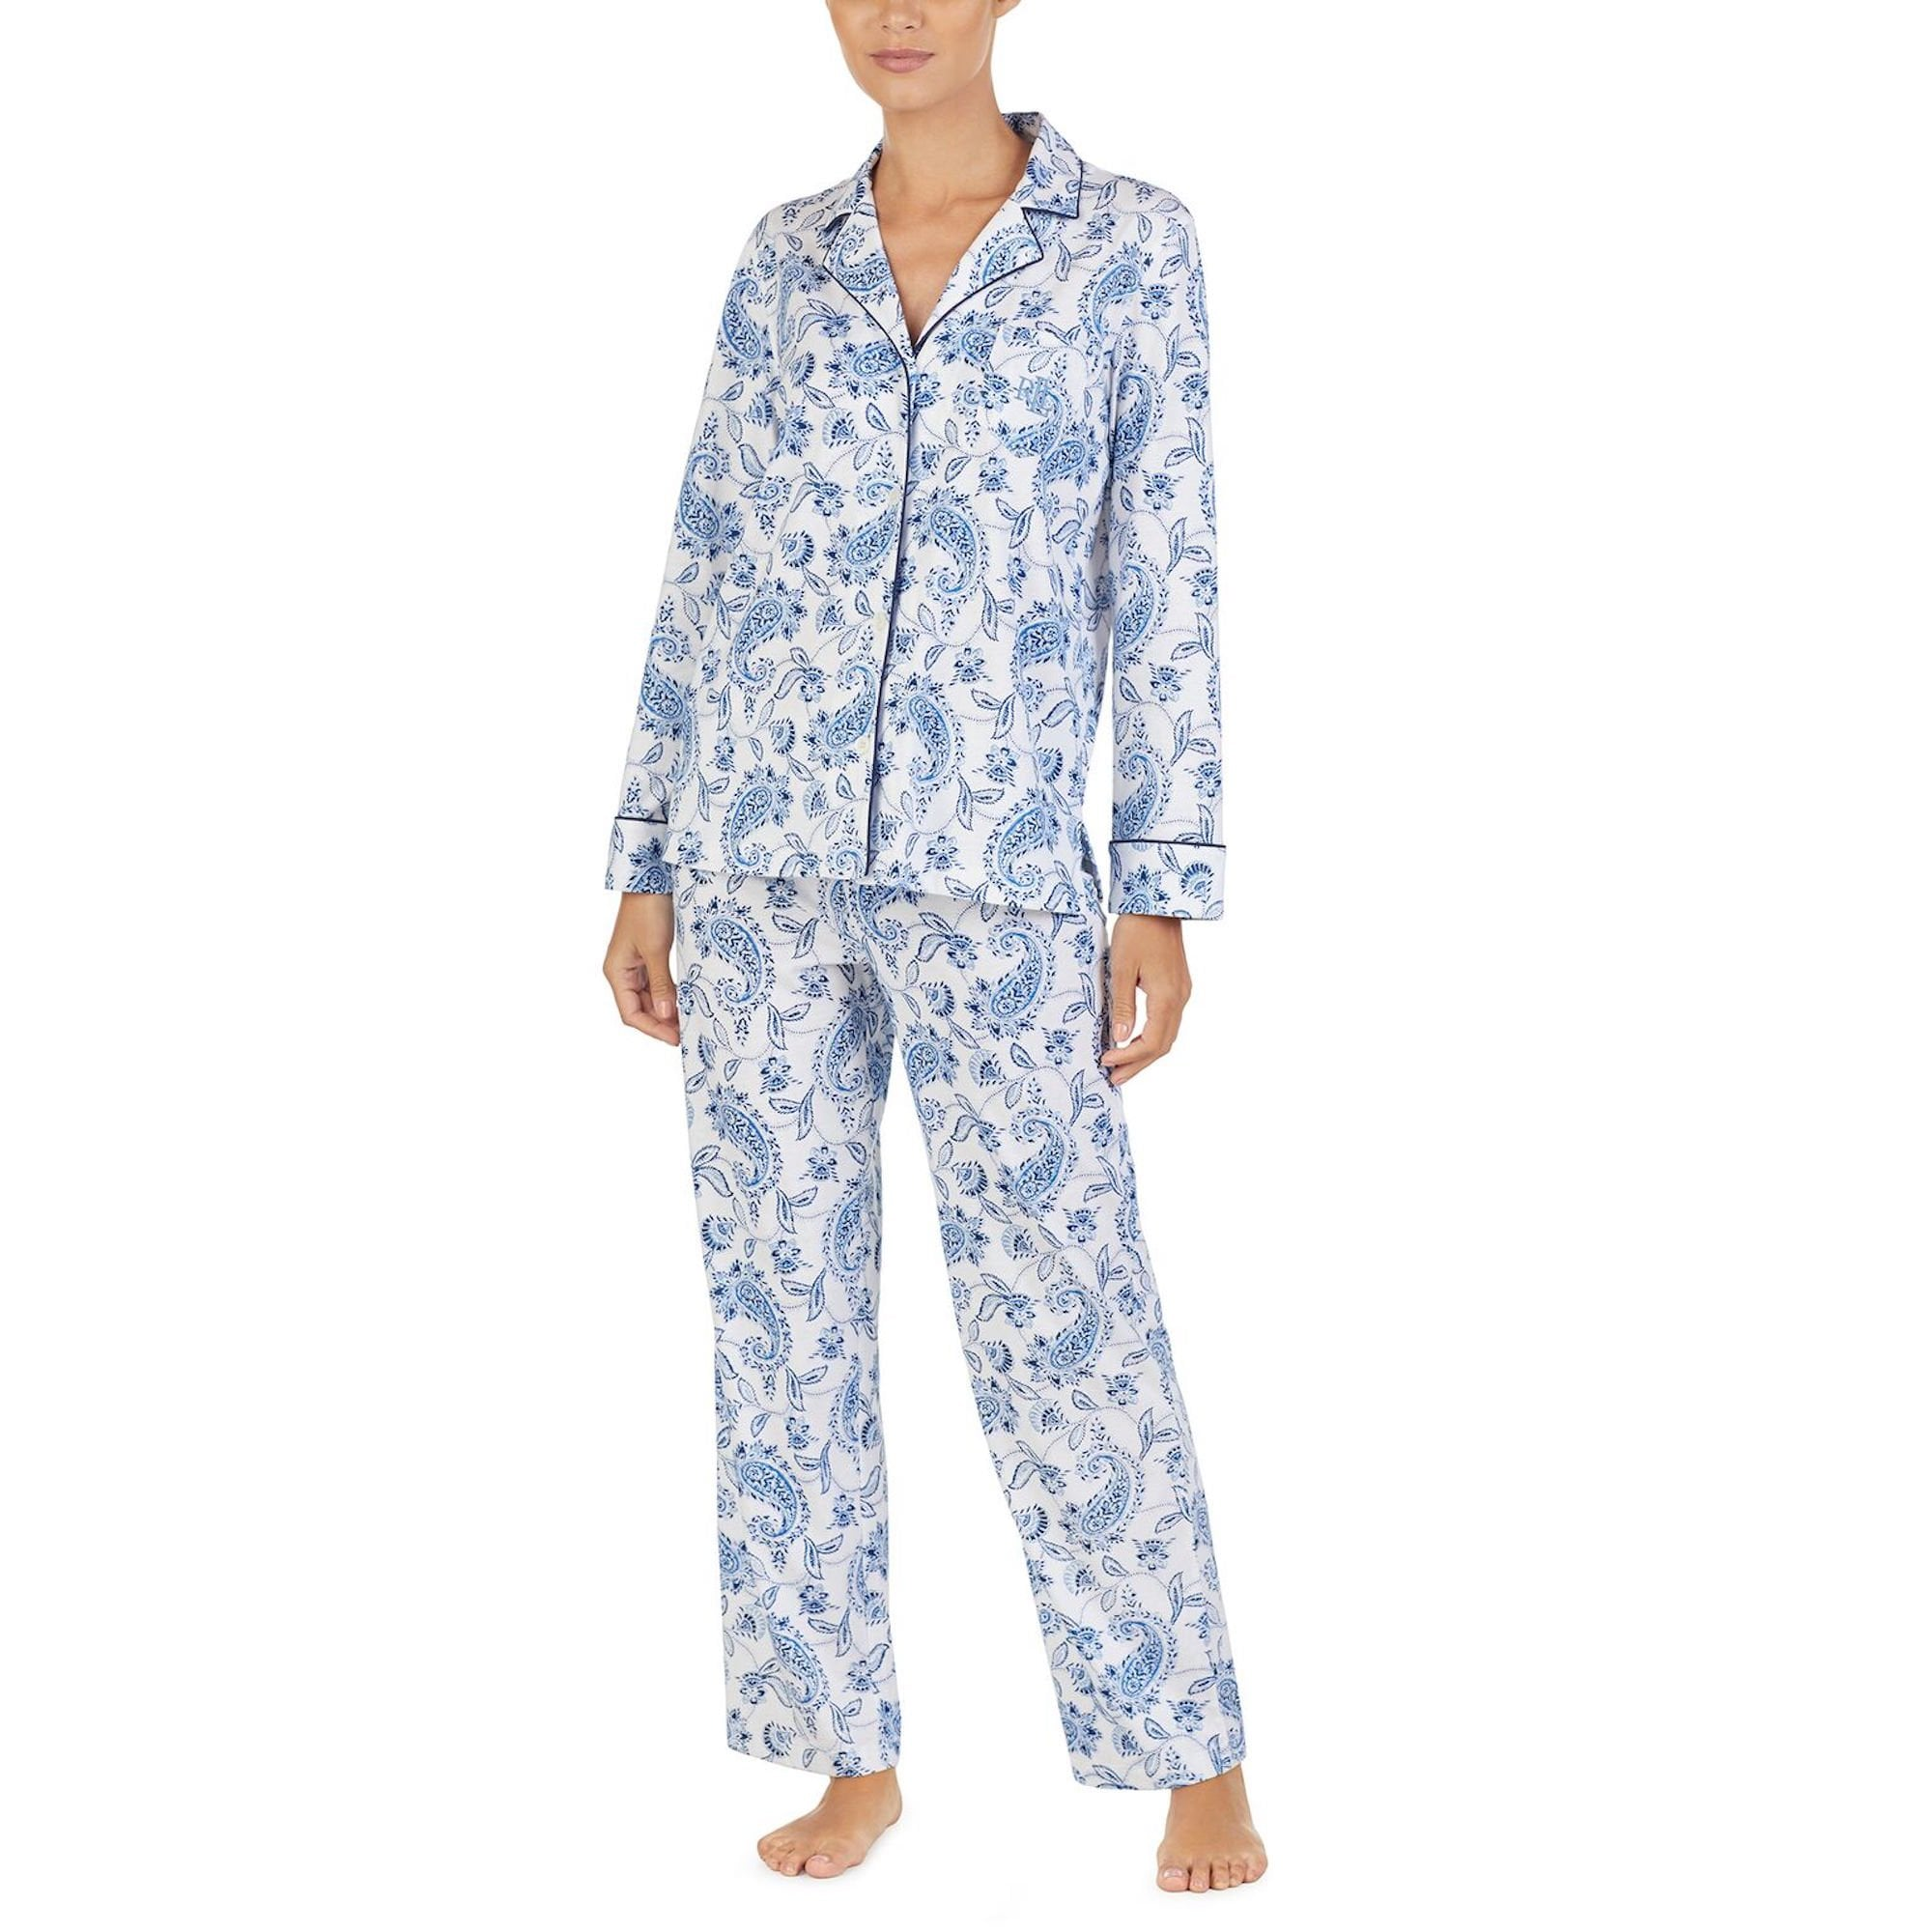 Paisley Soft Cotton Paisley Print PJ Set - For Her... from The Luxe ... 2bdccac7b30a